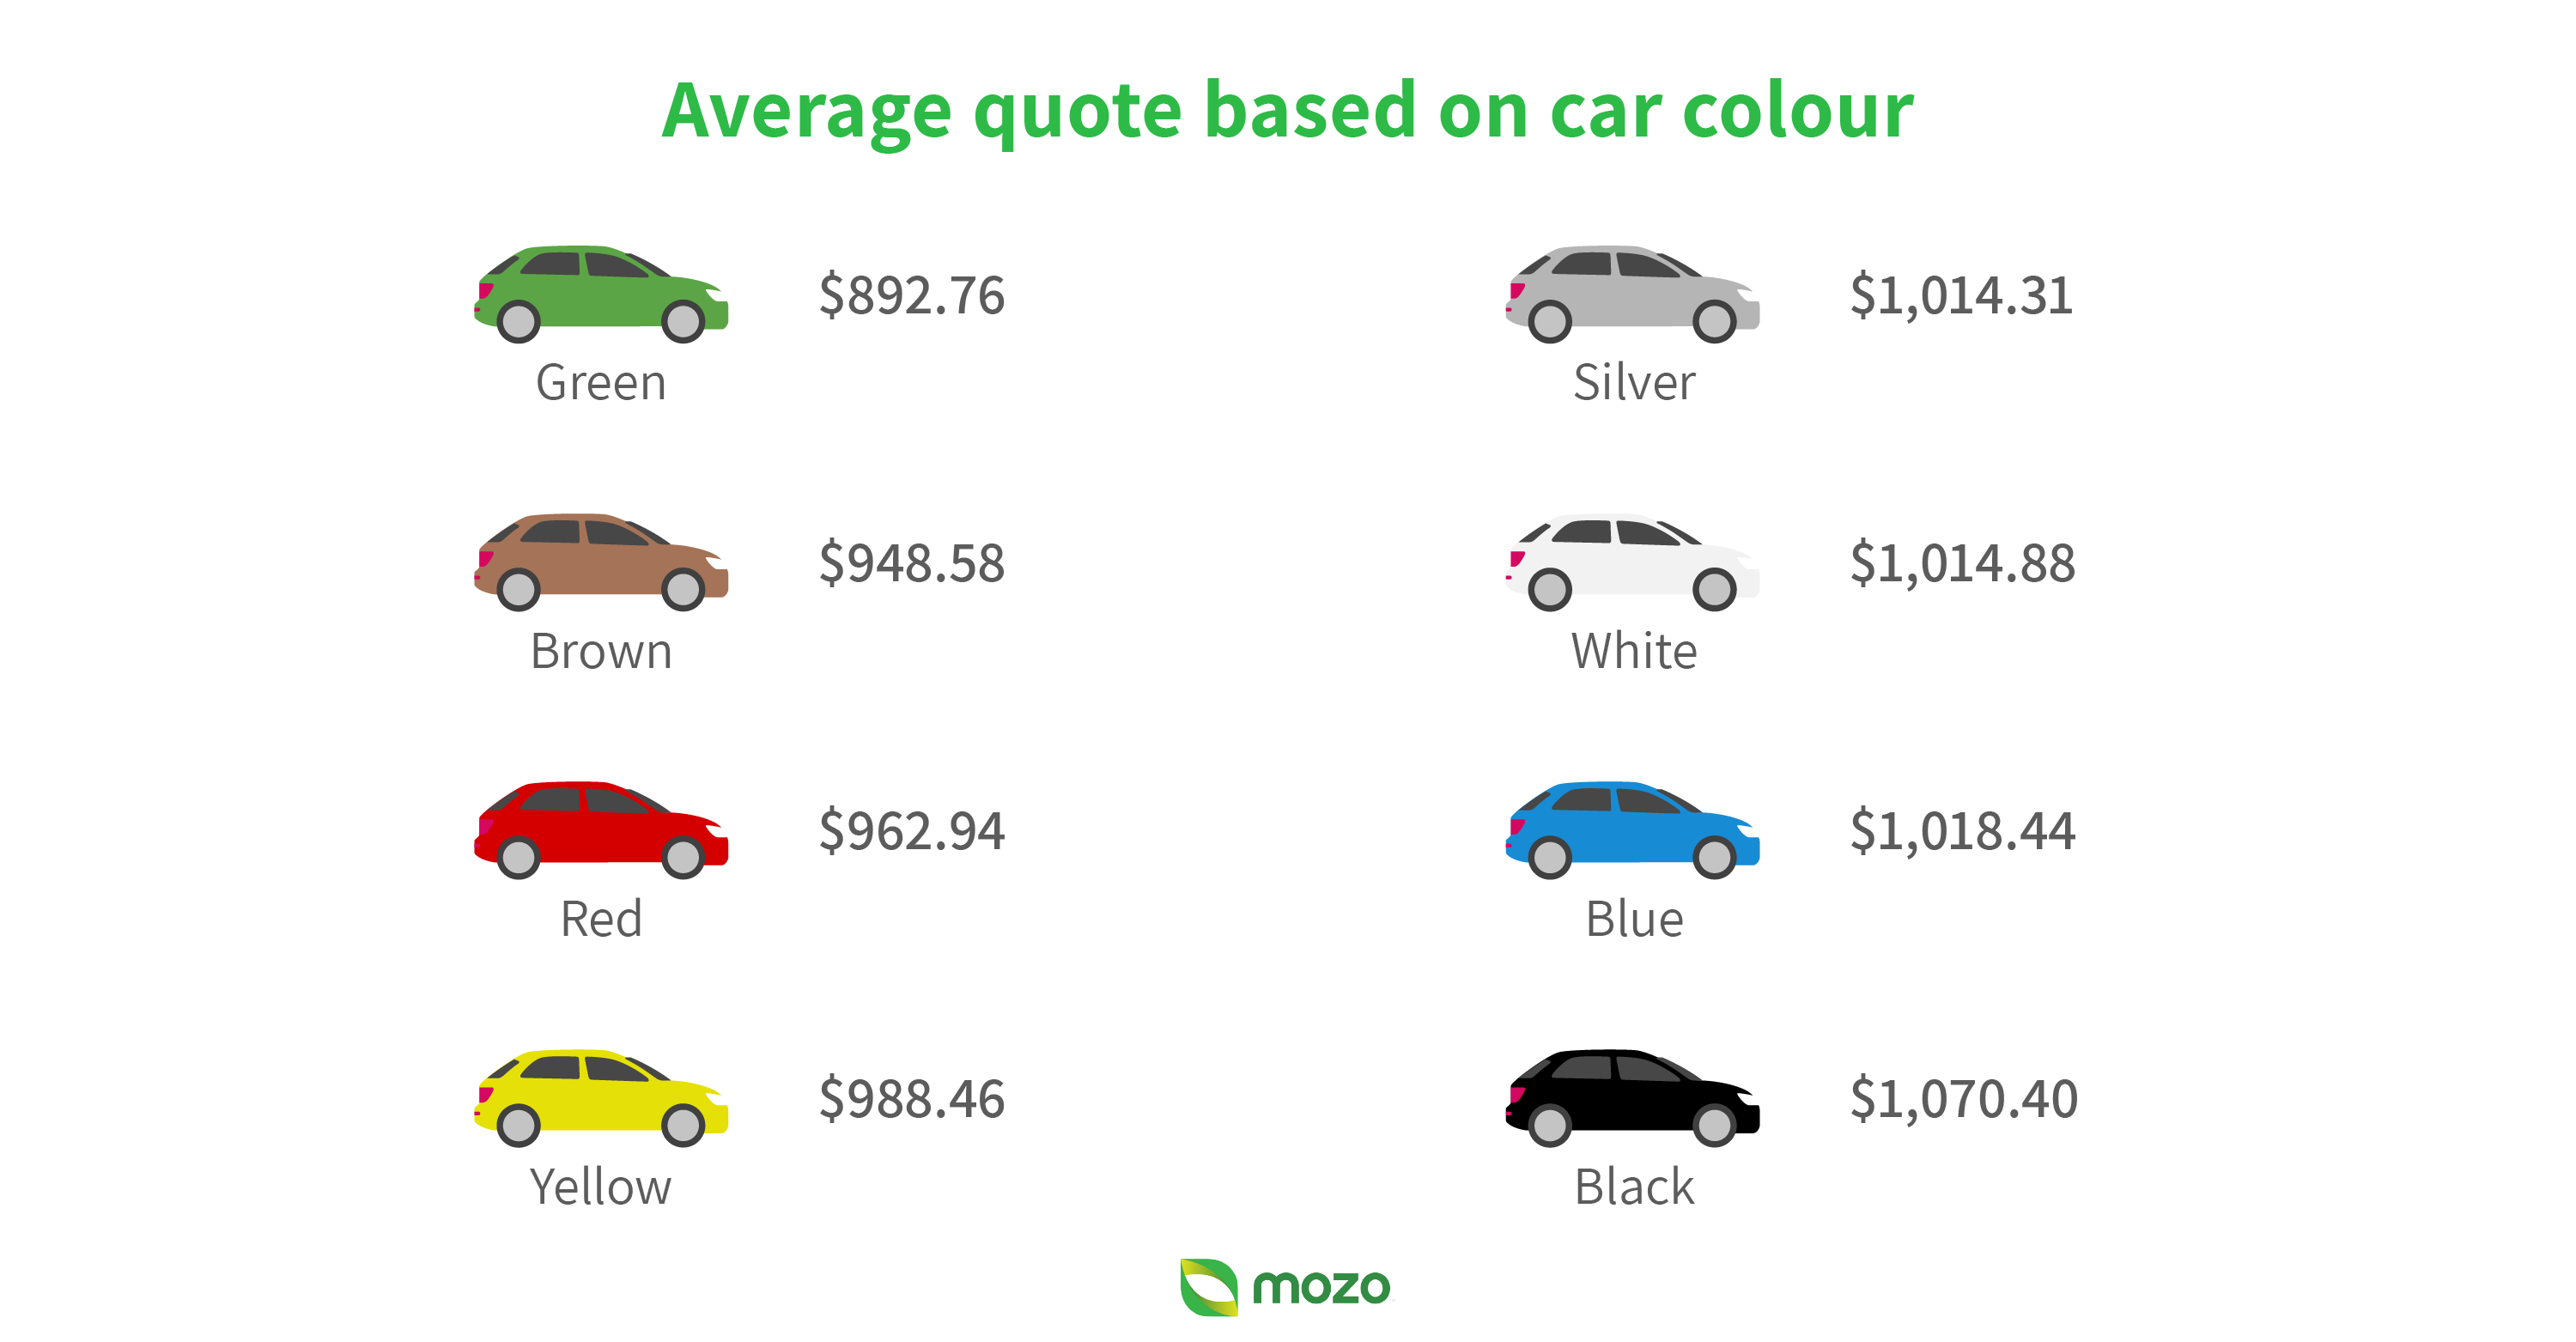 Graphic showing average insurance quote based on car colour. Average quote for a black car is $1,070.40 and average quote for a green car is $892.76.